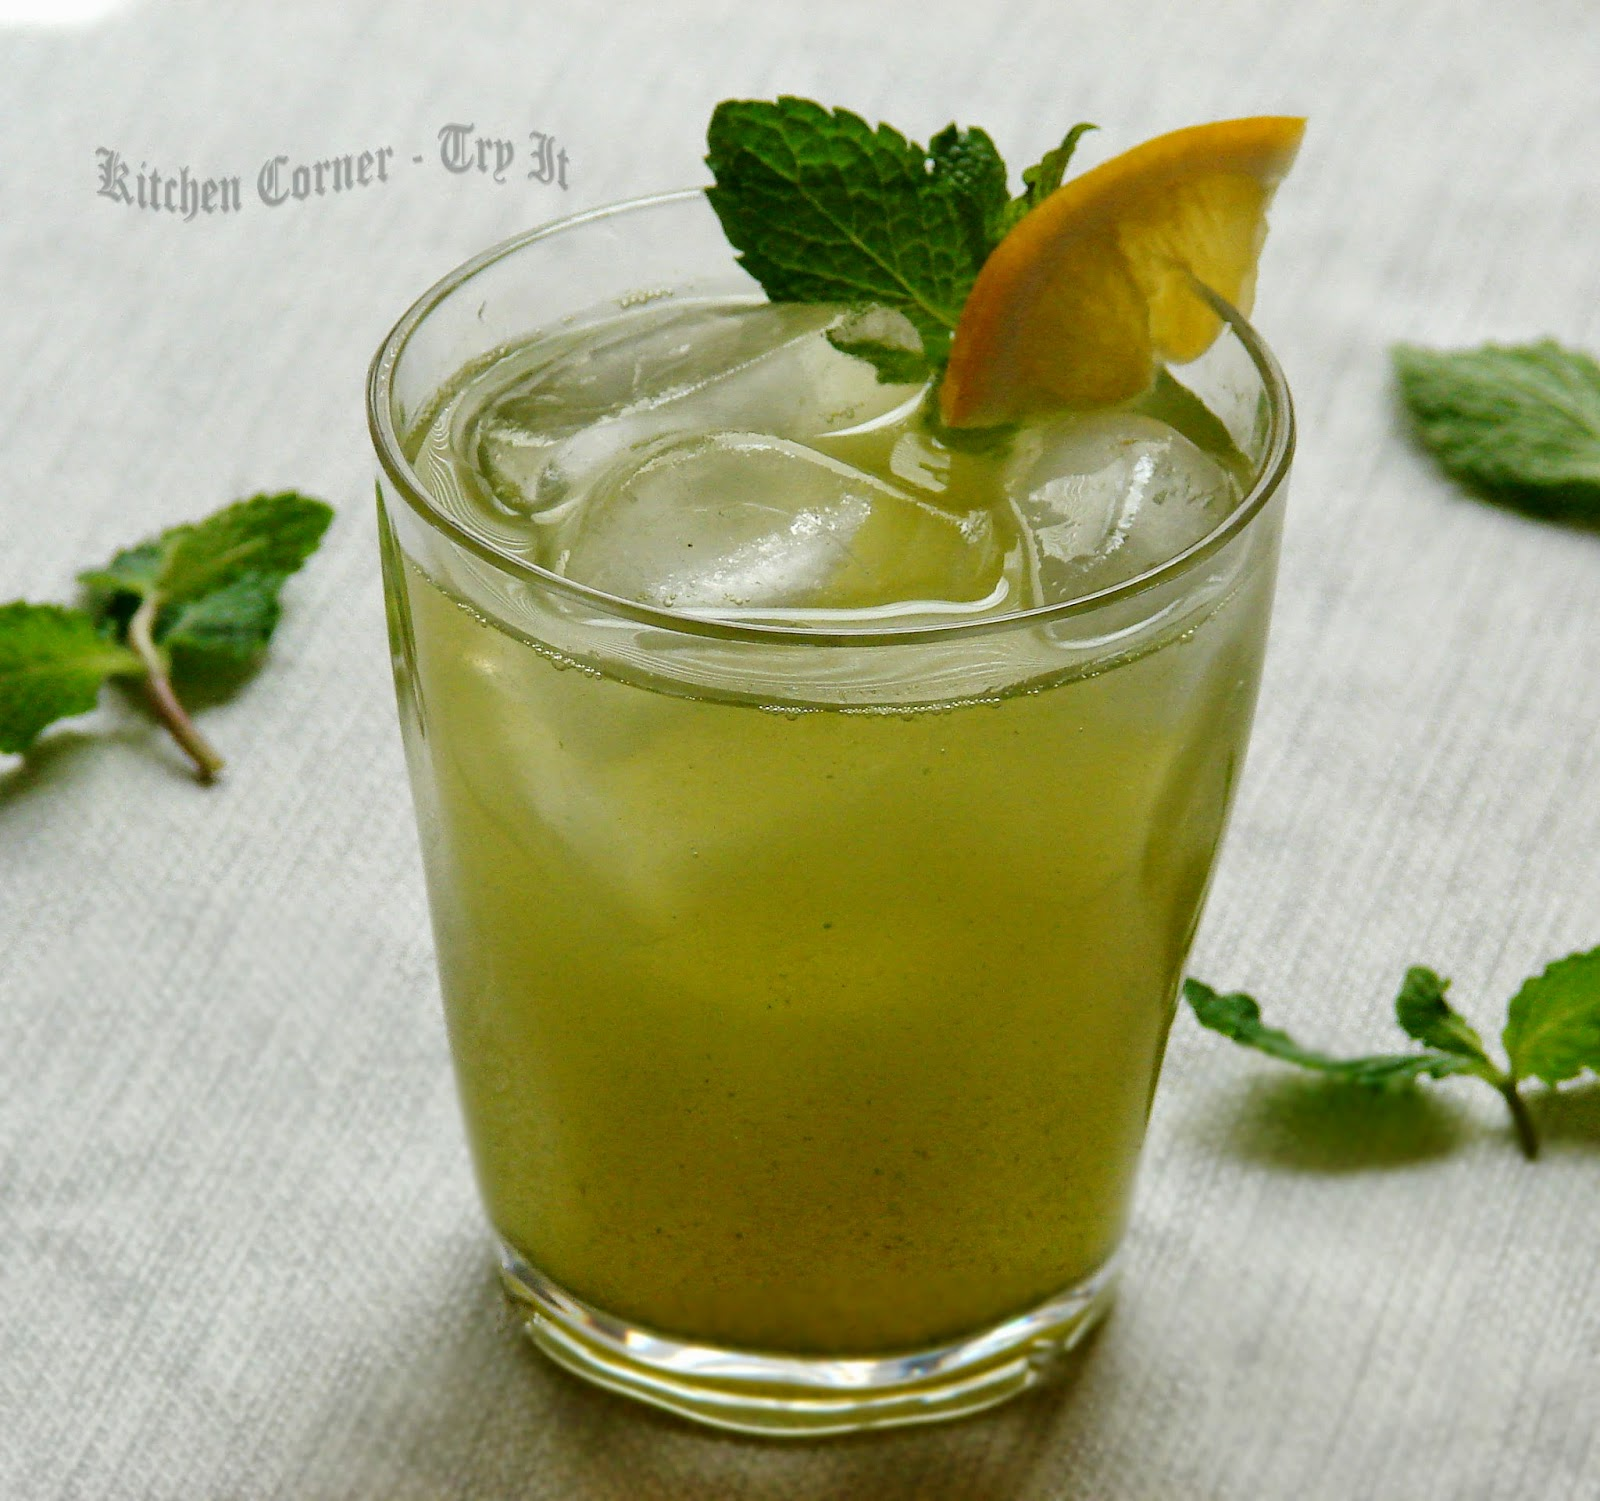 ... lemonade lavender lemonade vermontucky lemonade mint lemonade recipe